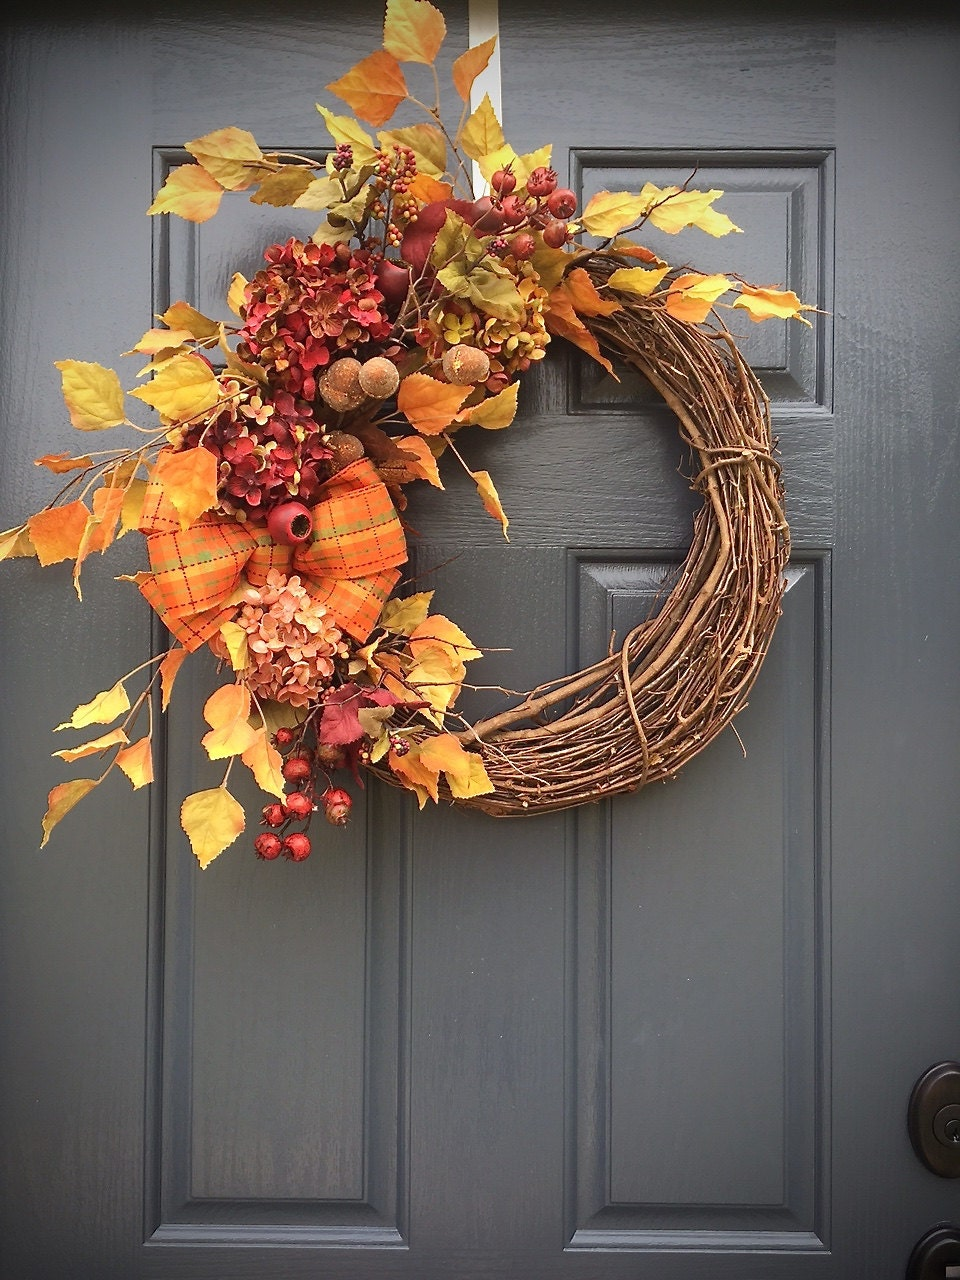 Fall Door Wreaths Fall Door Decor Autumn Wreaths Hydrangea: fall autumn door wreaths